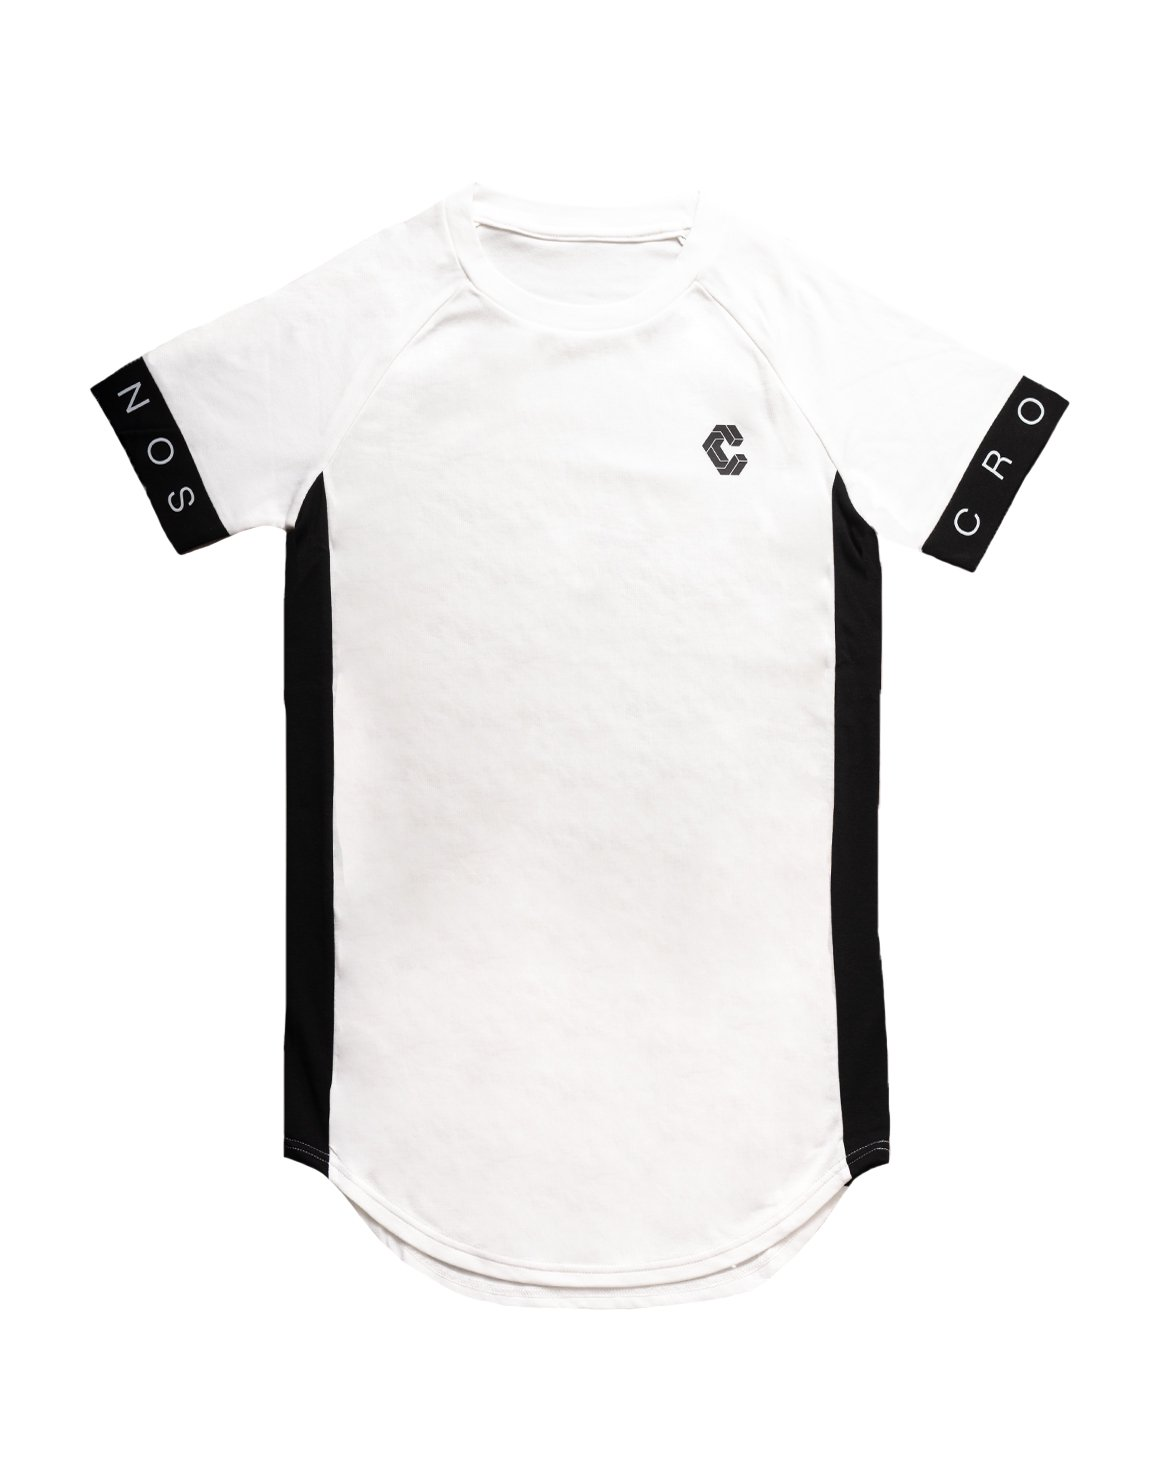 <img class='new_mark_img1' src='https://img.shop-pro.jp/img/new/icons1.gif' style='border:none;display:inline;margin:0px;padding:0px;width:auto;' />CUFF DESIGN LOGO TIGHT SIZE T-SHIRTS【WHITE】